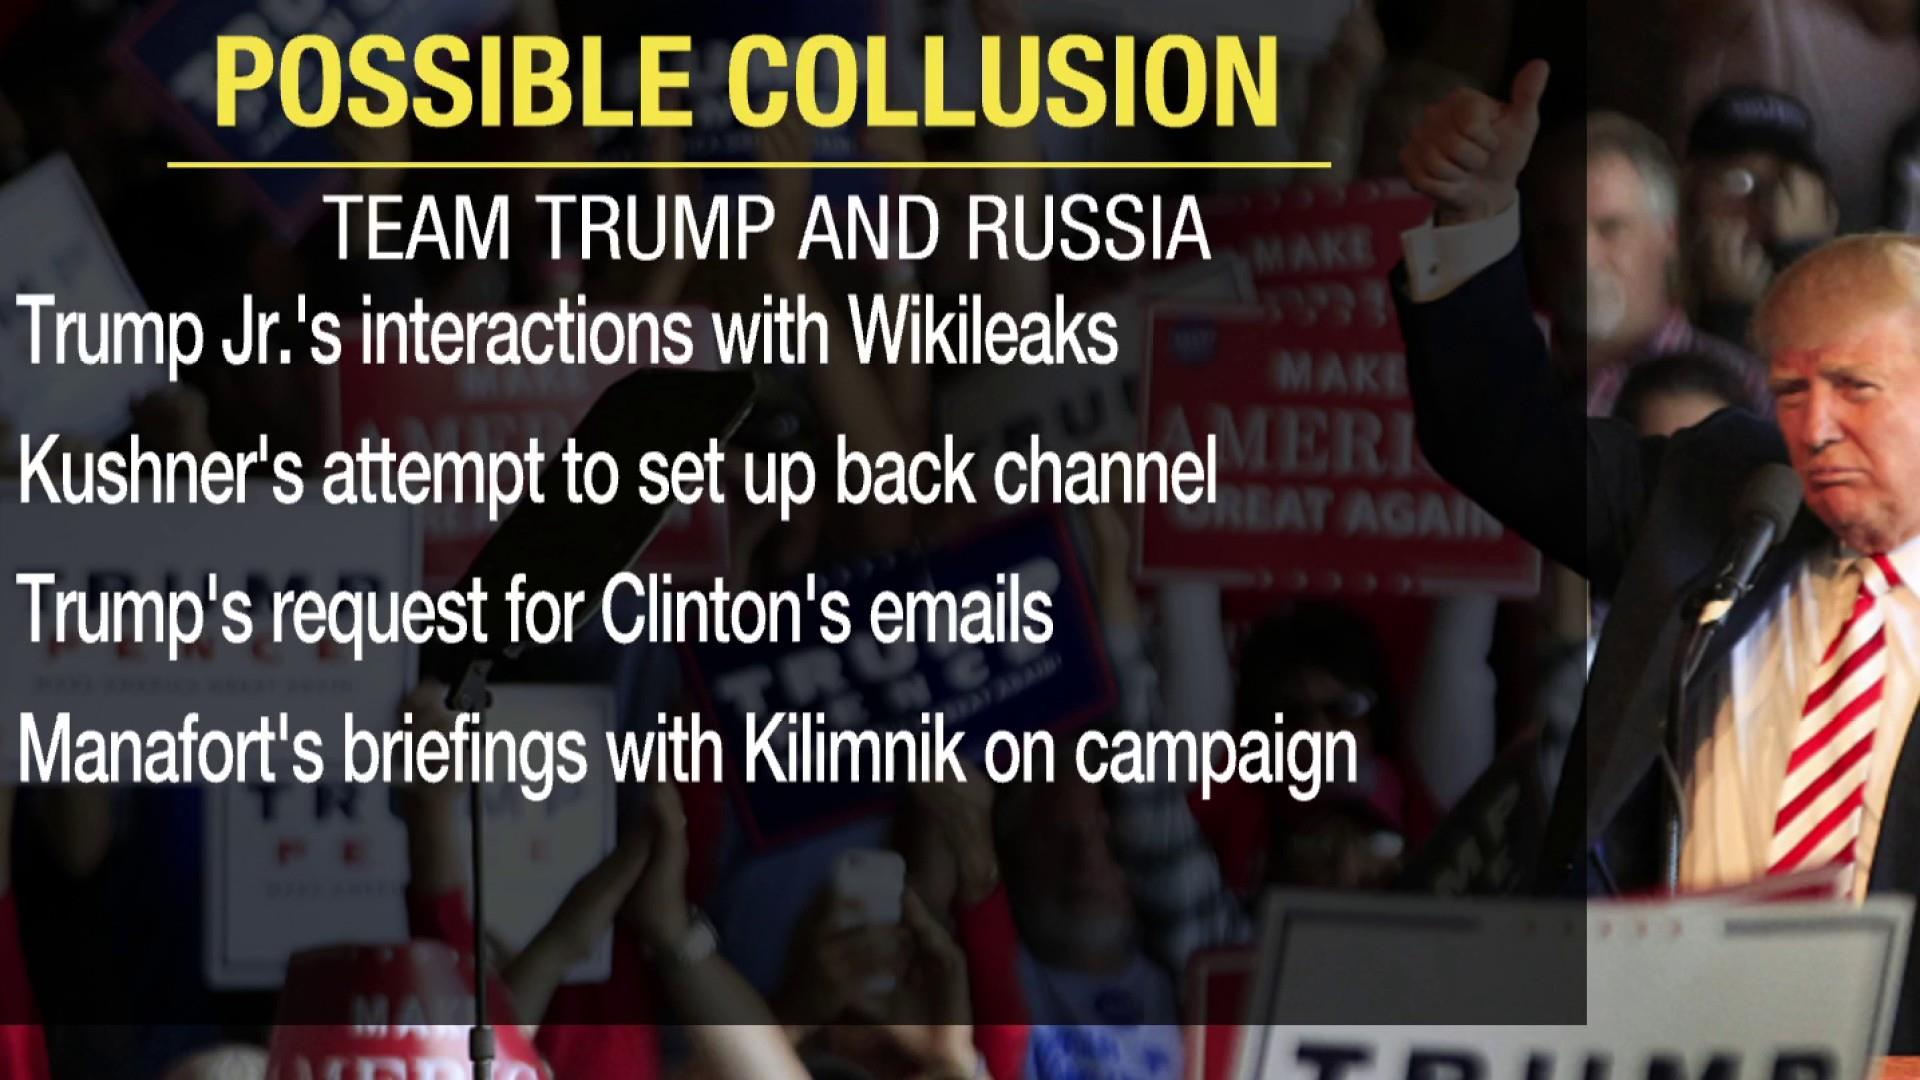 Mueller did not find conspiracy but collusion was not ruled out